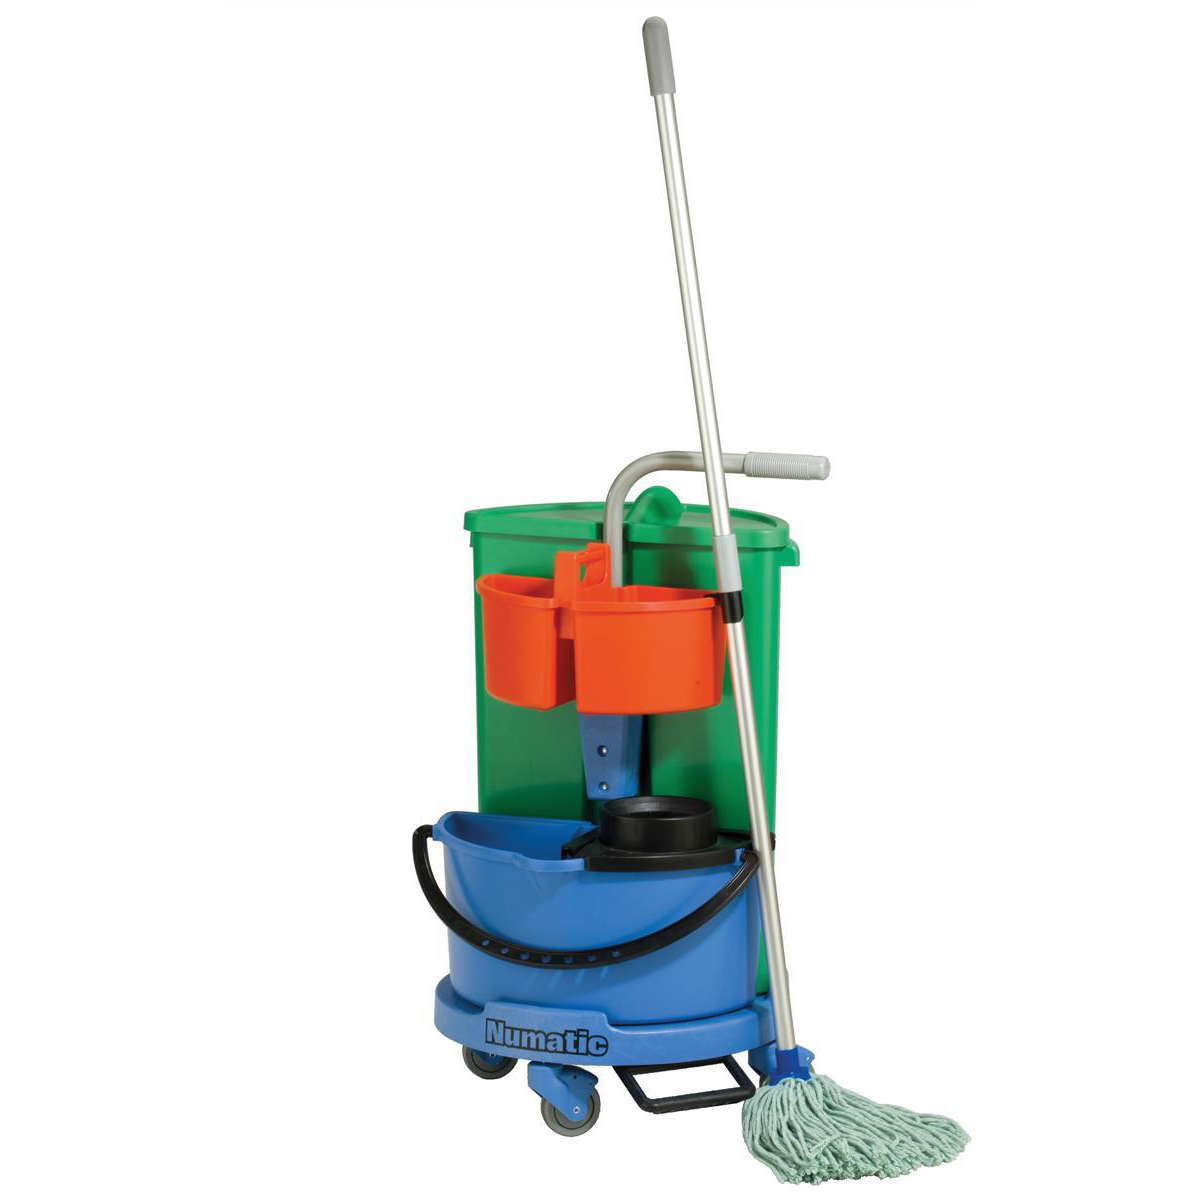 Numatic Janitorial Carousel Trolley with 2 Buckets and Storage W545xD50xH870mm Ref NC1/TM/ST